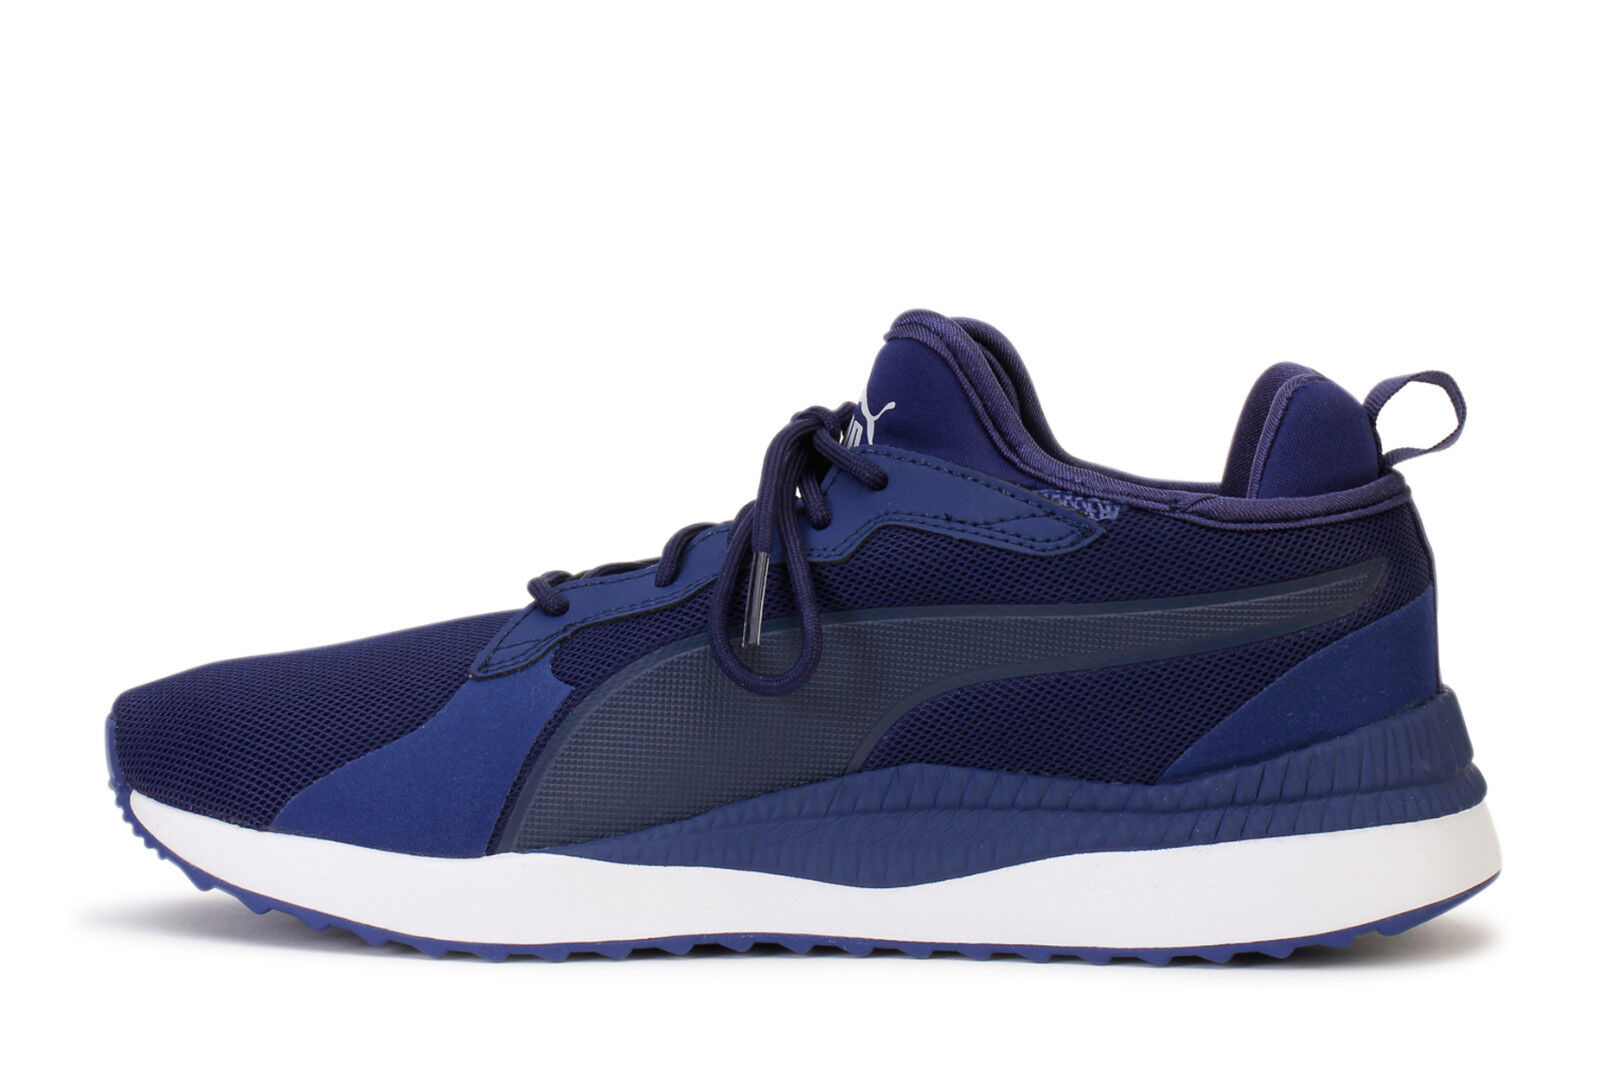 PUMA PACER NEXT TRAINERS LOW LOW LOW SNEAKERS Uomo SHOES BLUE INDIGO 363703-03 SIZE 9 NEW 395815